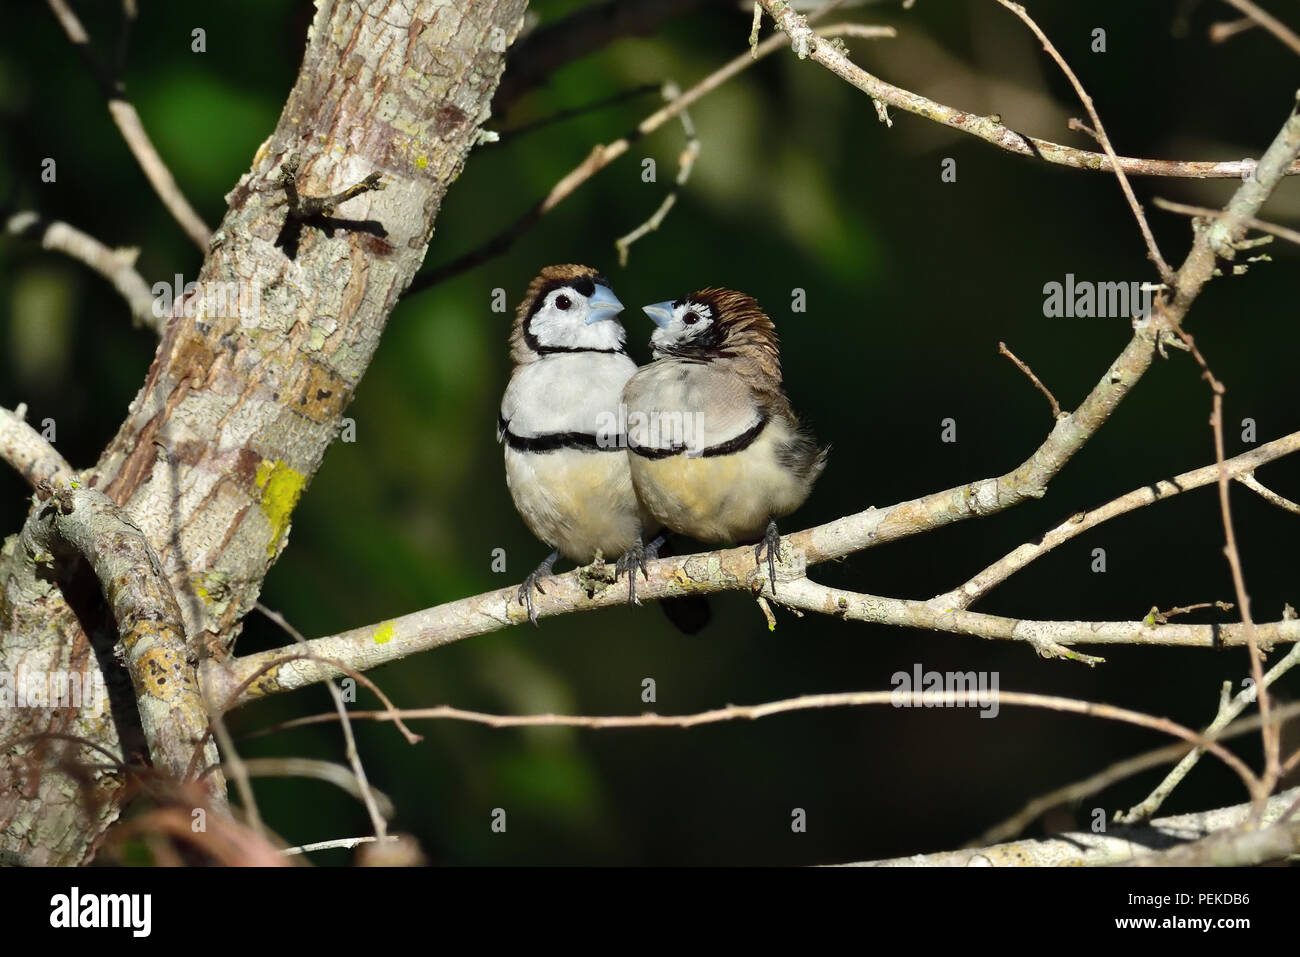 Two Australian, Queensland Double-barred Finches ( Taeniopygia bichenovii ) looking at each other Stock Photo